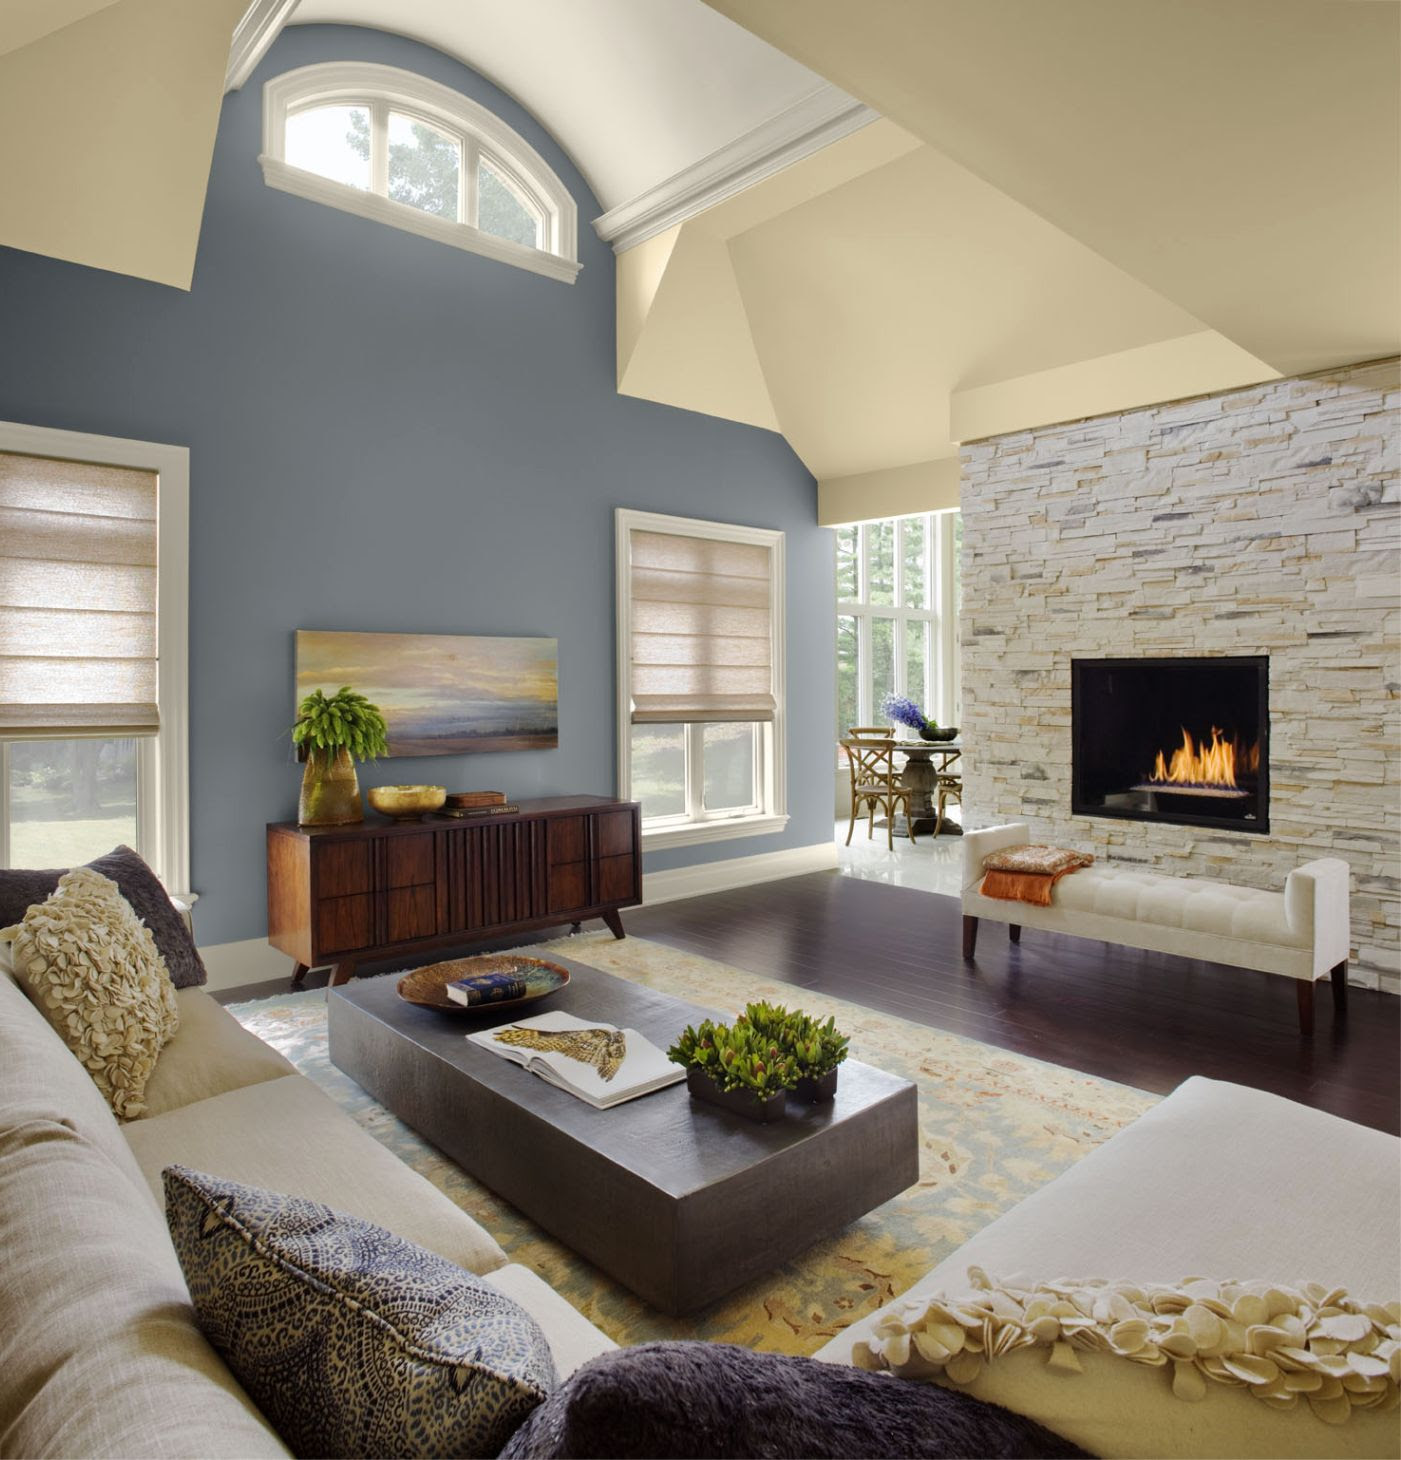 Decorating A Vaulted Ceiling Living Room Natilittlethings